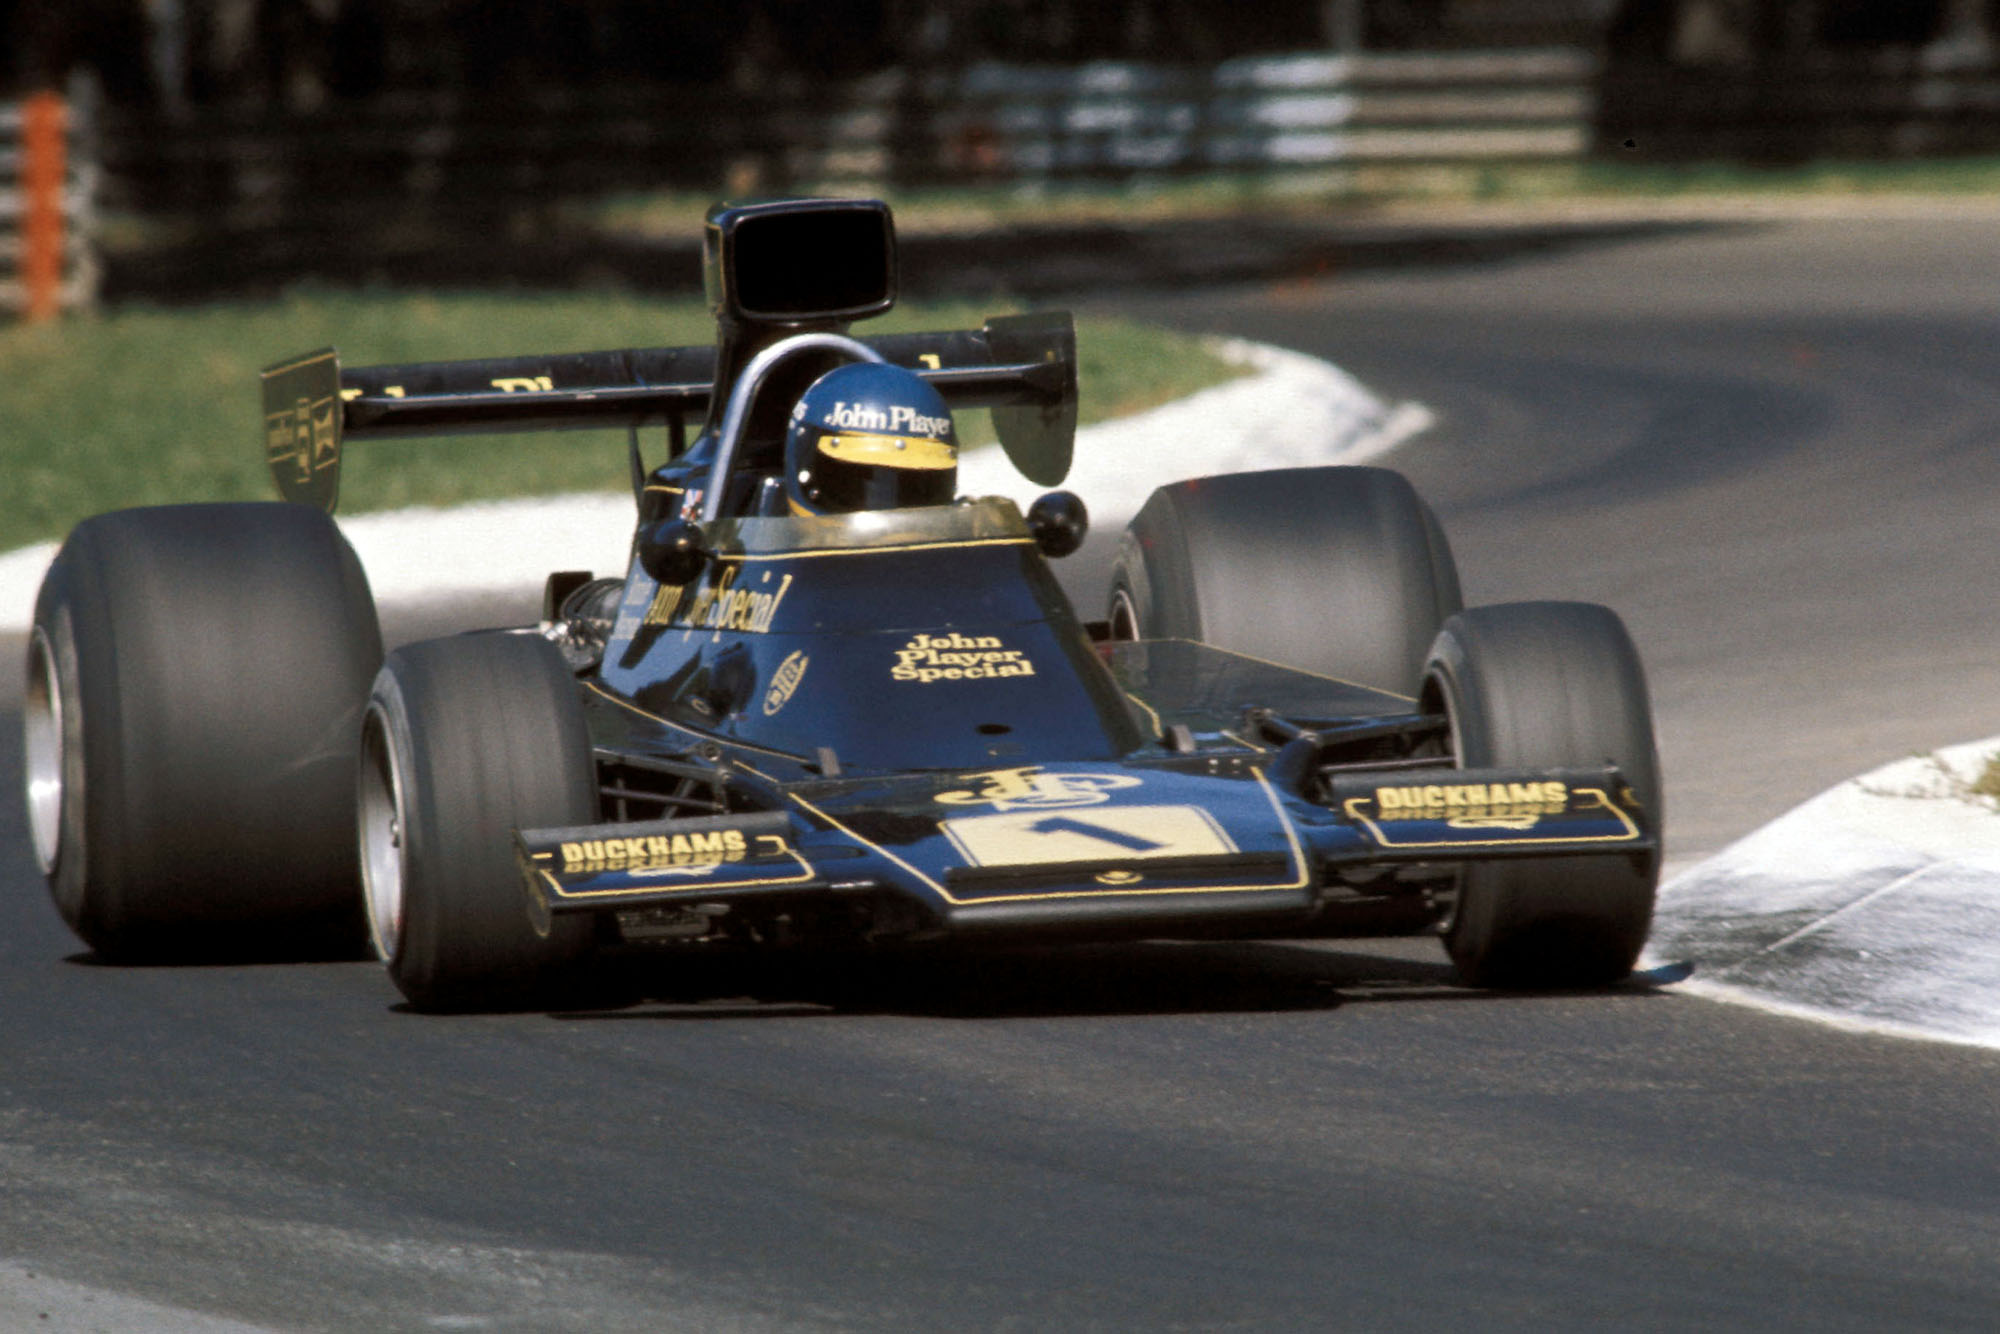 Ronnie Peterson driving for Lotus at the 1974 Italian Grand Prix.